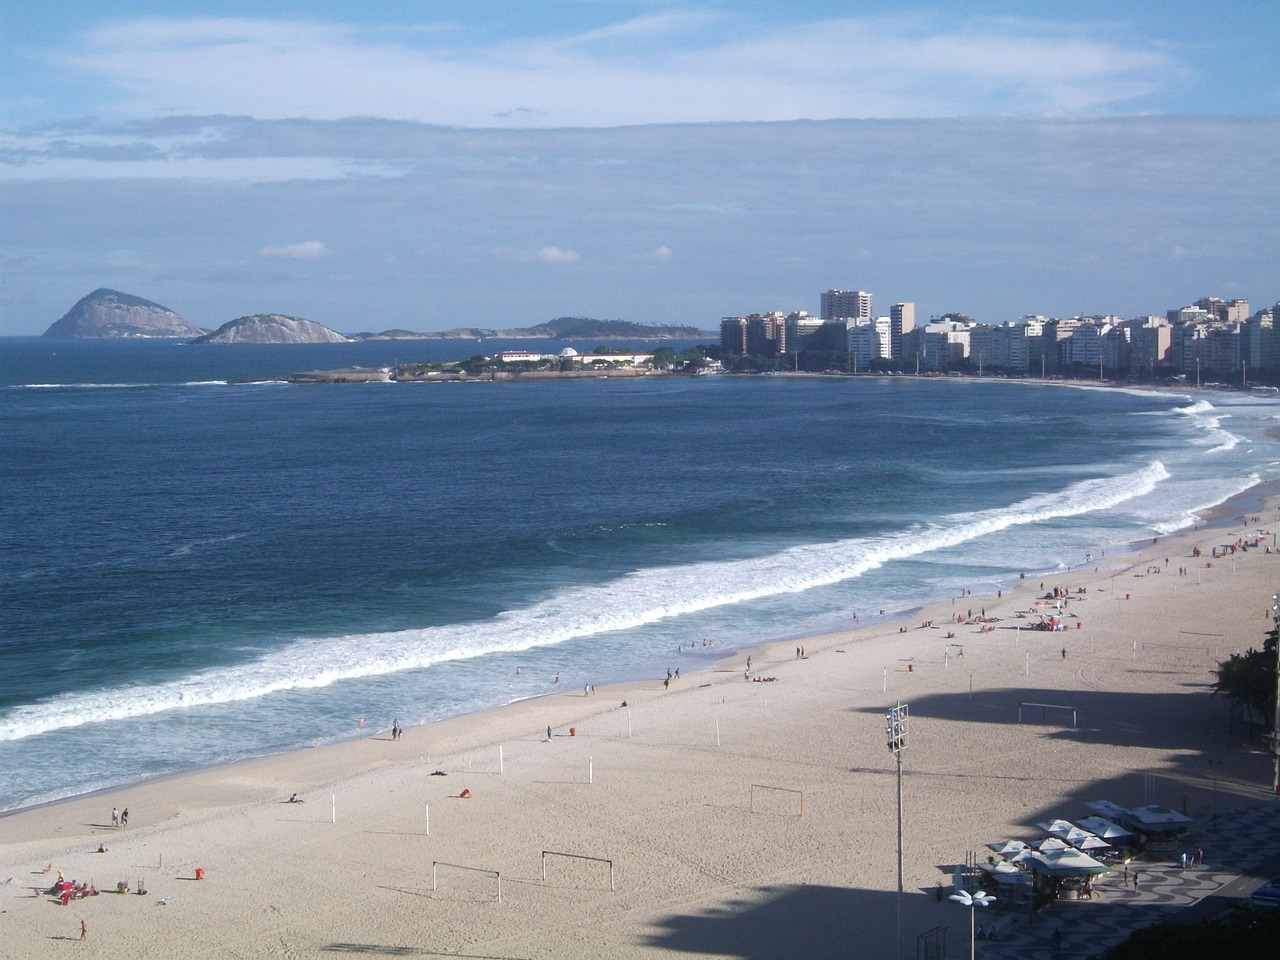 copacabana-beach-64030_1280